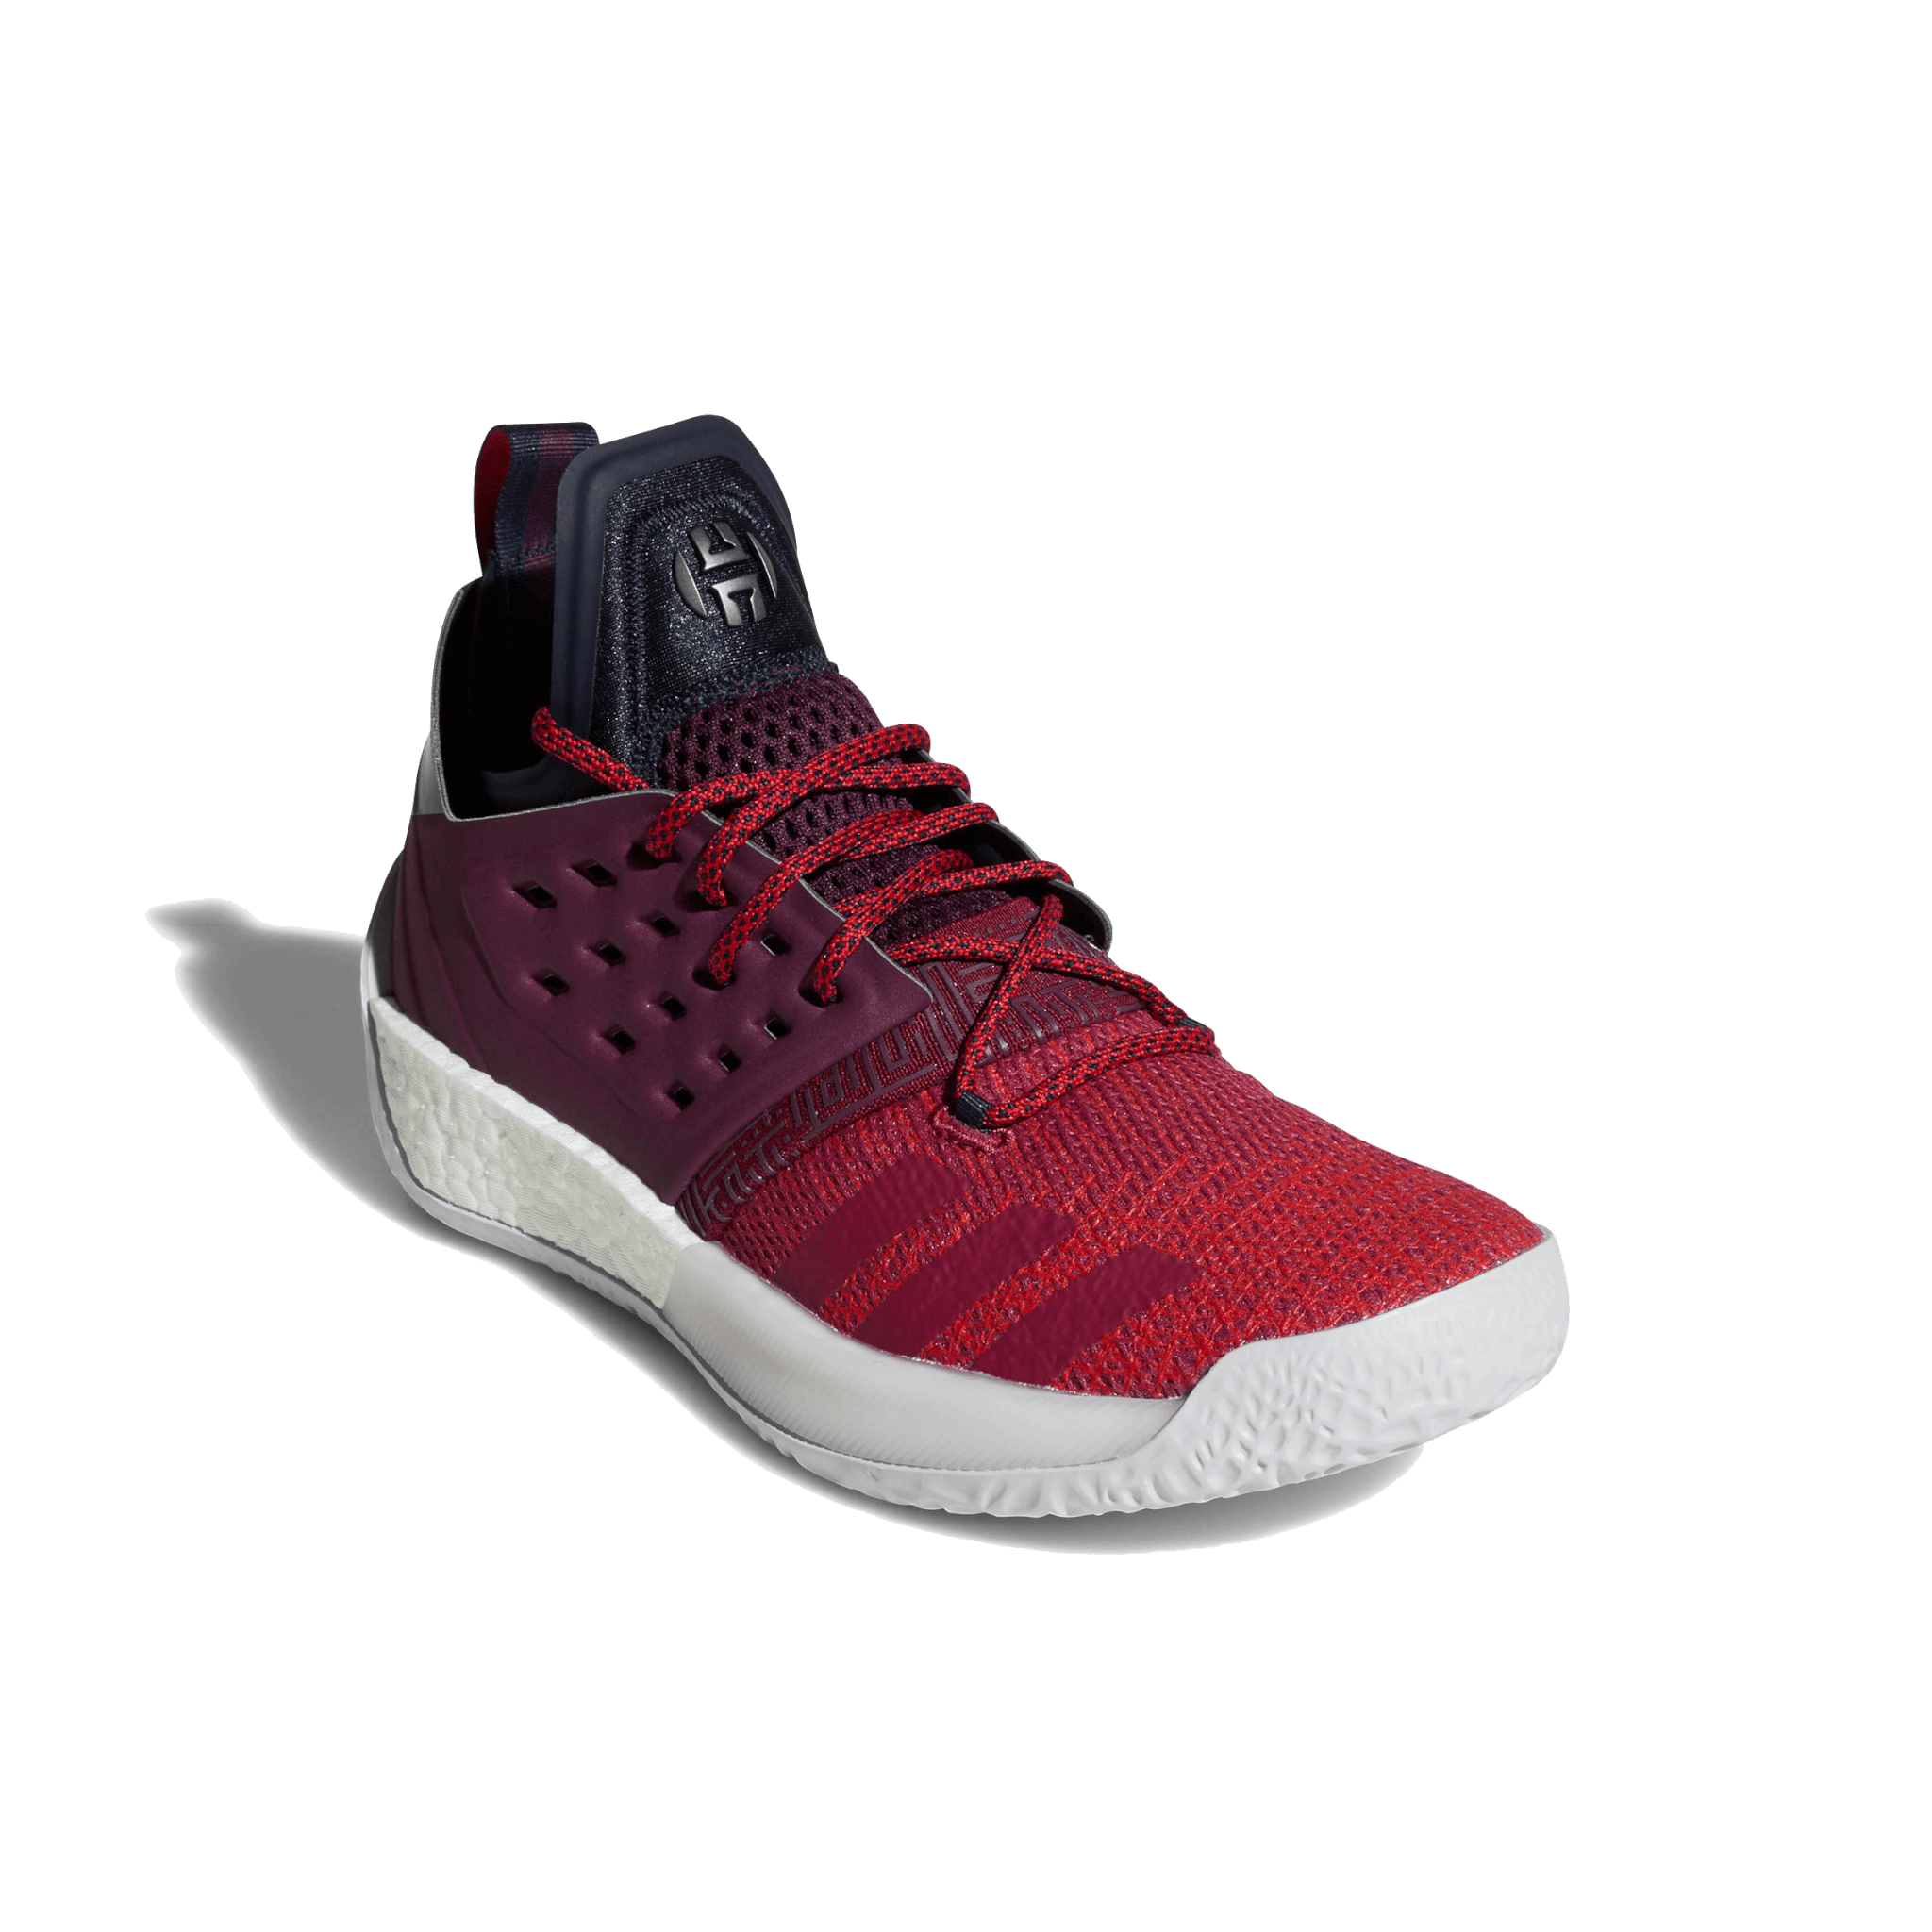 e5b14b571a3 Adidas Harden Vol. 2 Performance Review